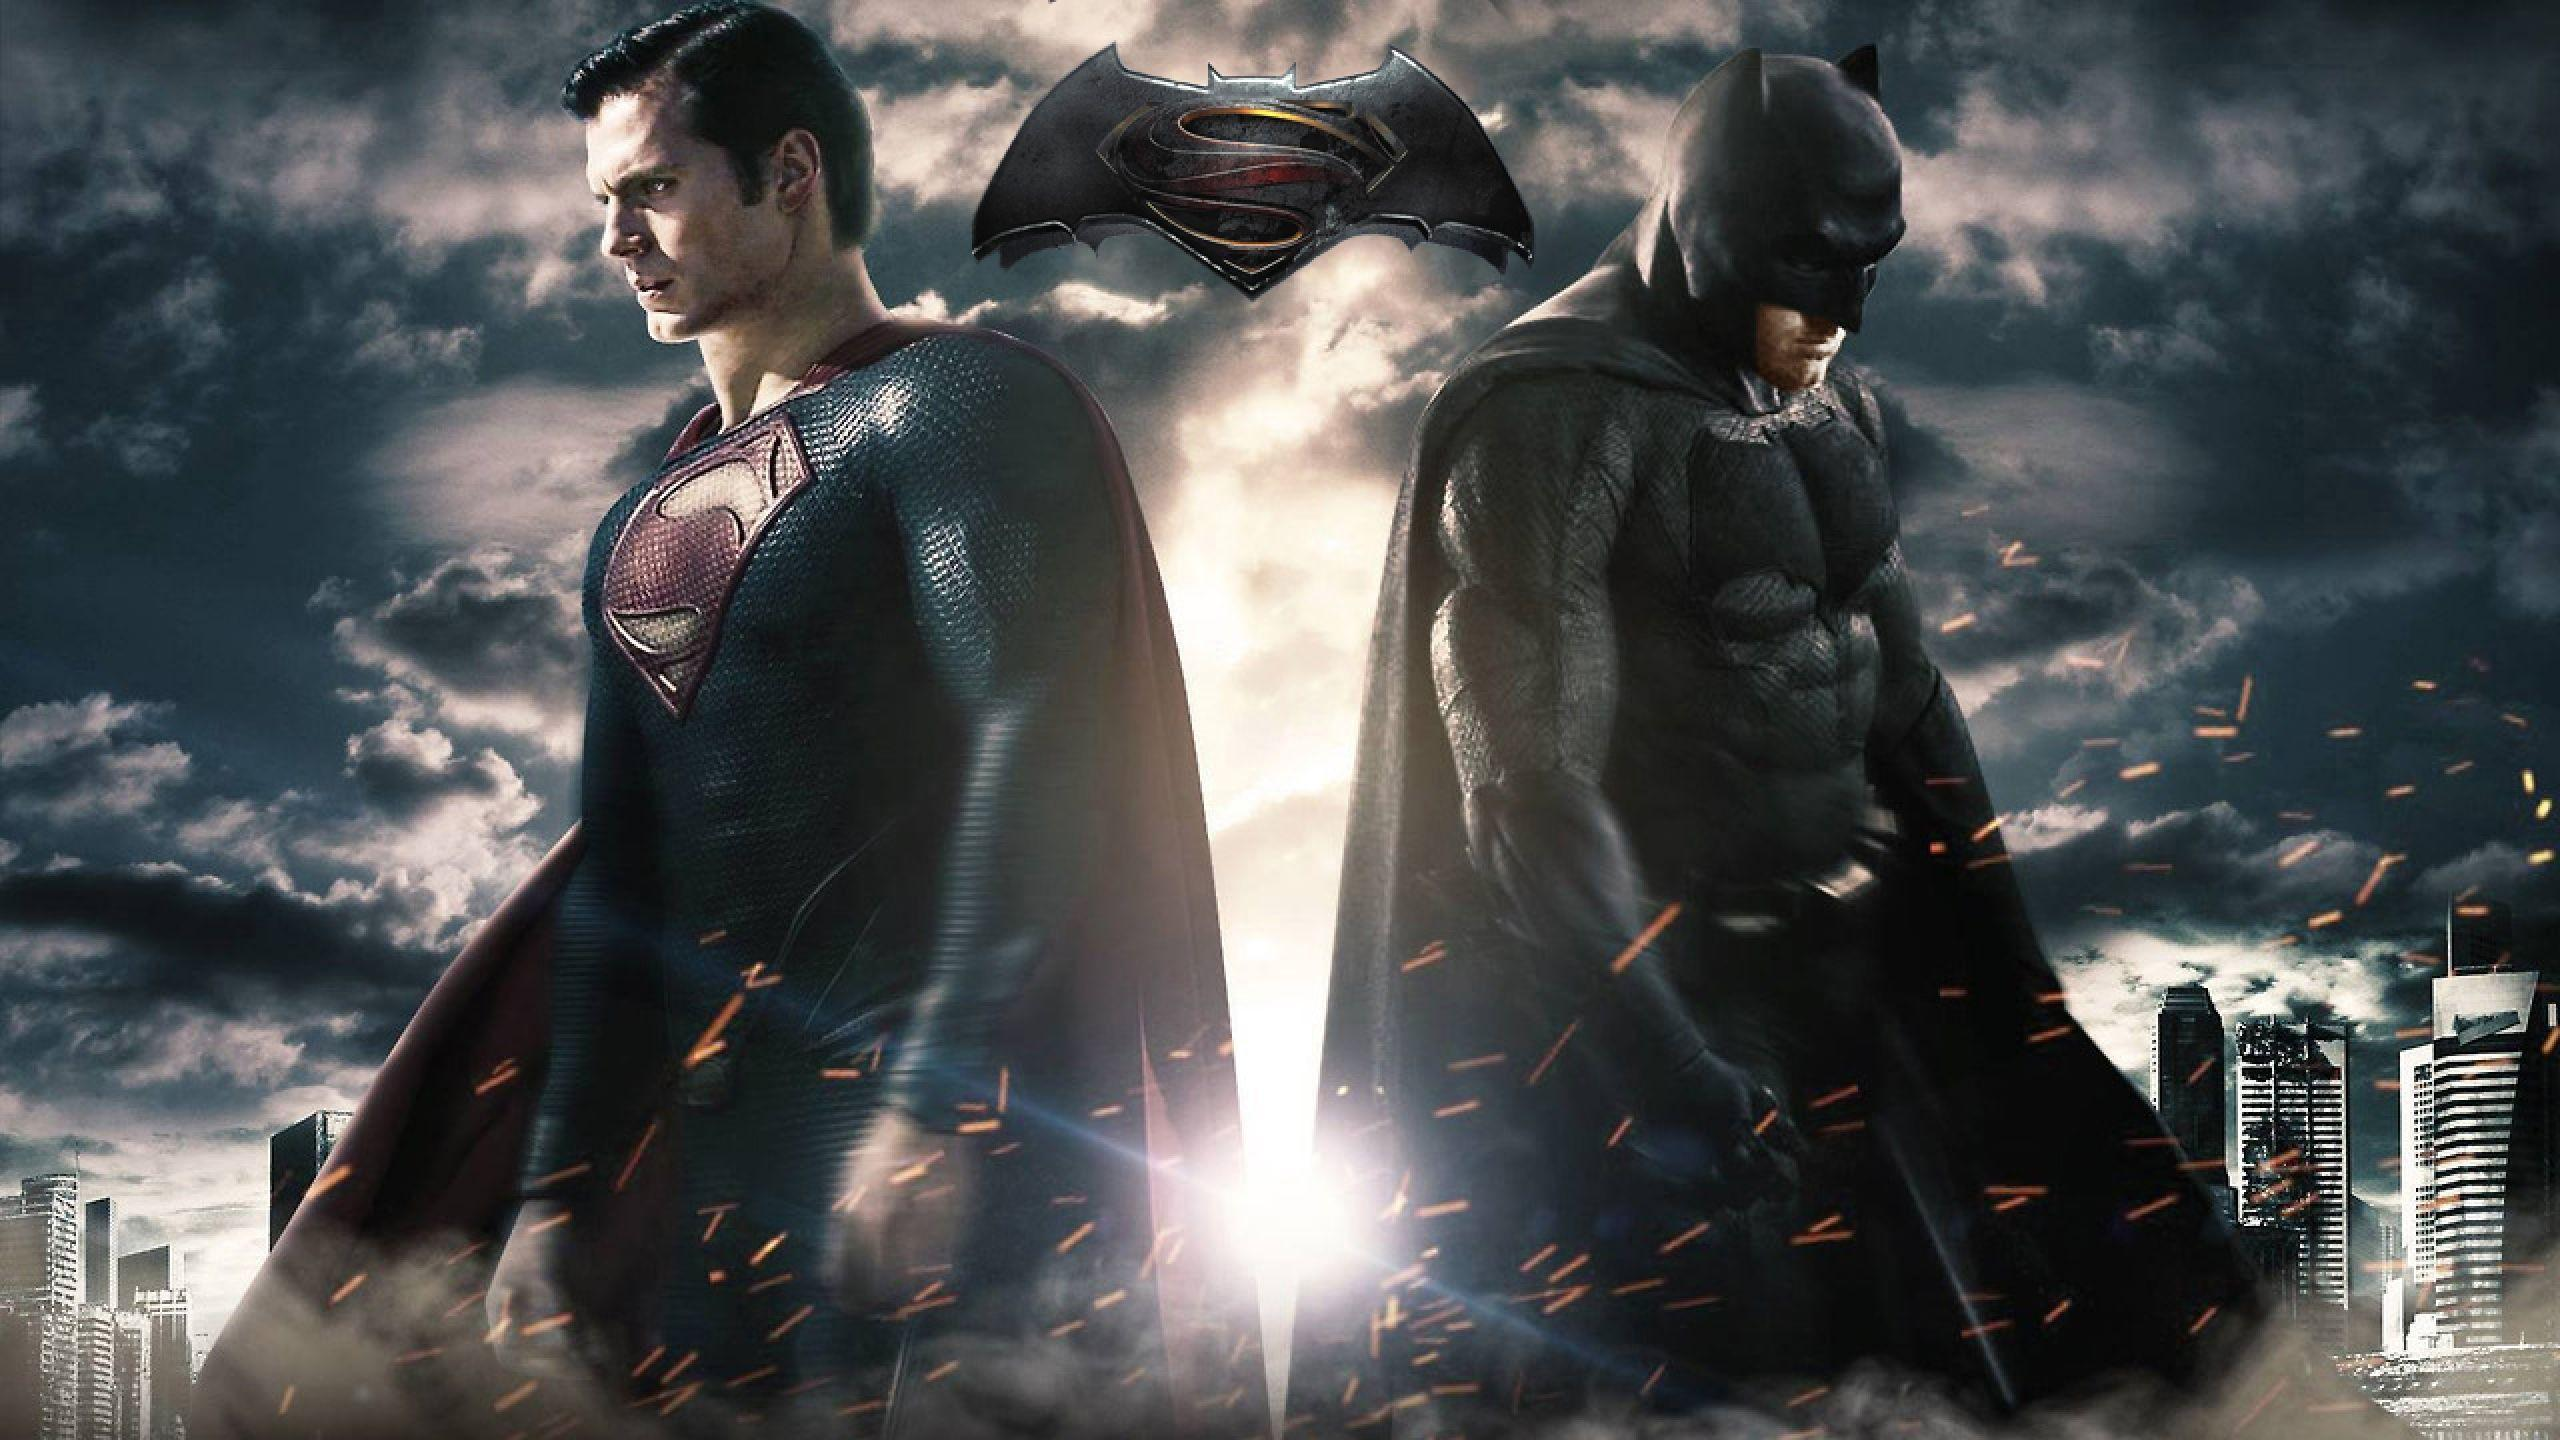 Batman v Superman: Dawn of Justice Wallpapers Image Photos